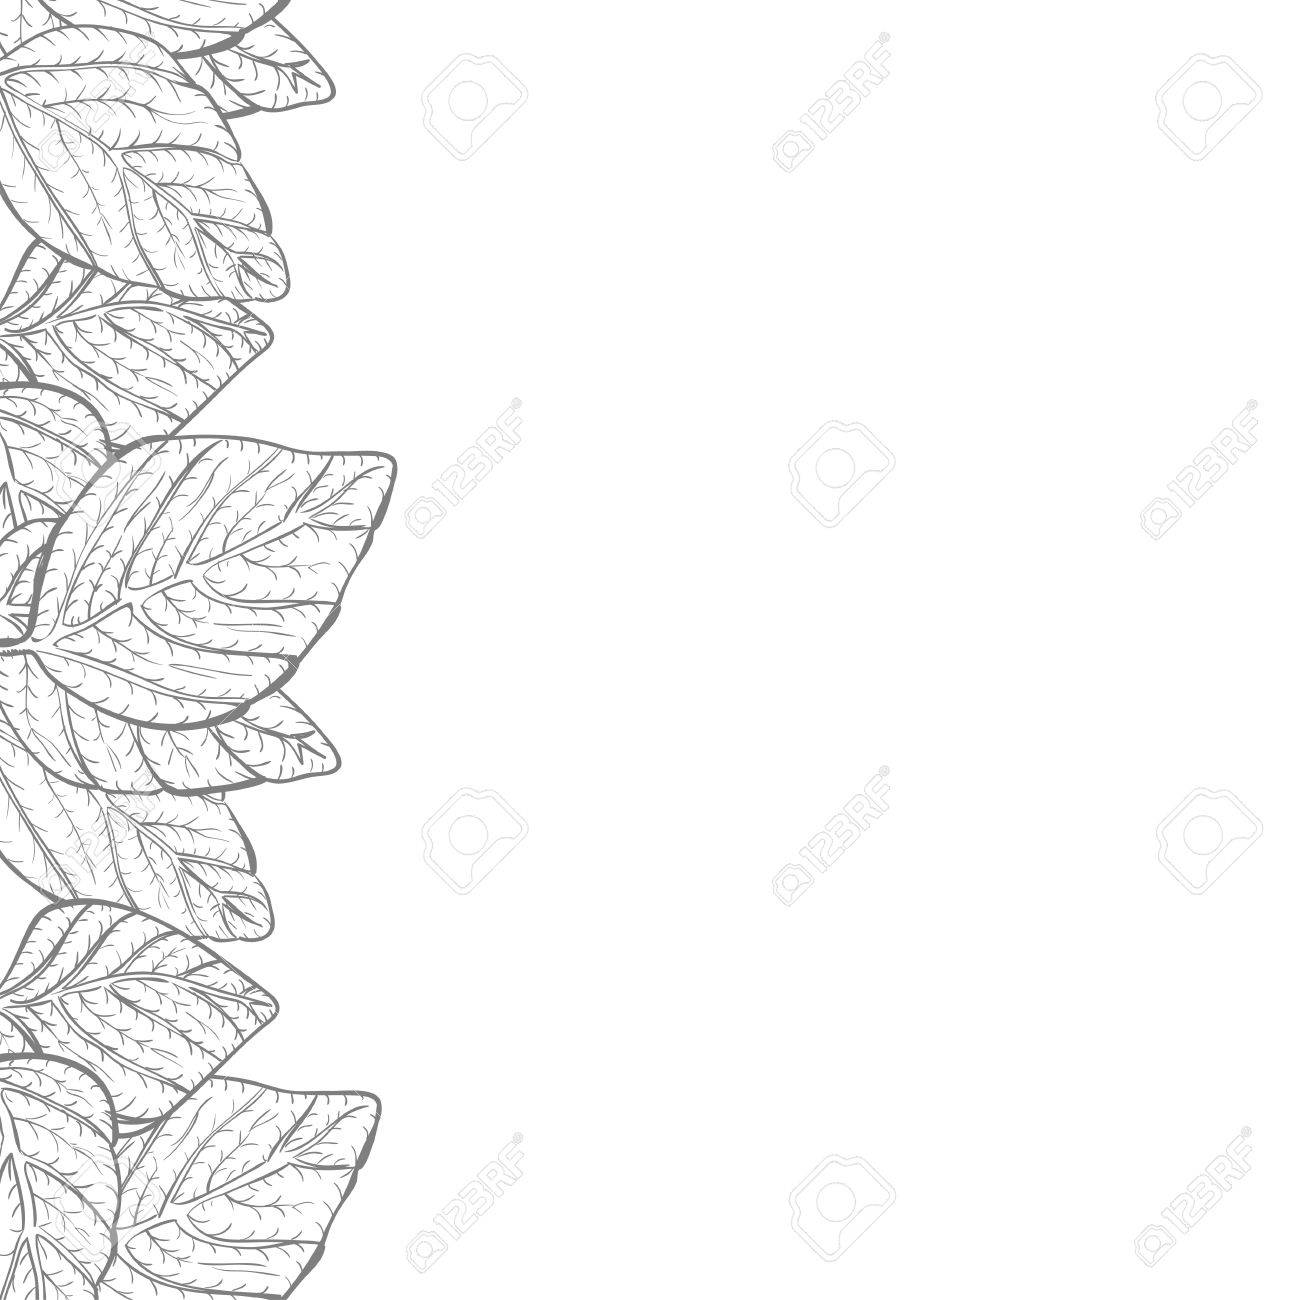 vector background nature foliage leaves border frame with copy royalty free cliparts vectors and stock illustration image 45337943 123rf com